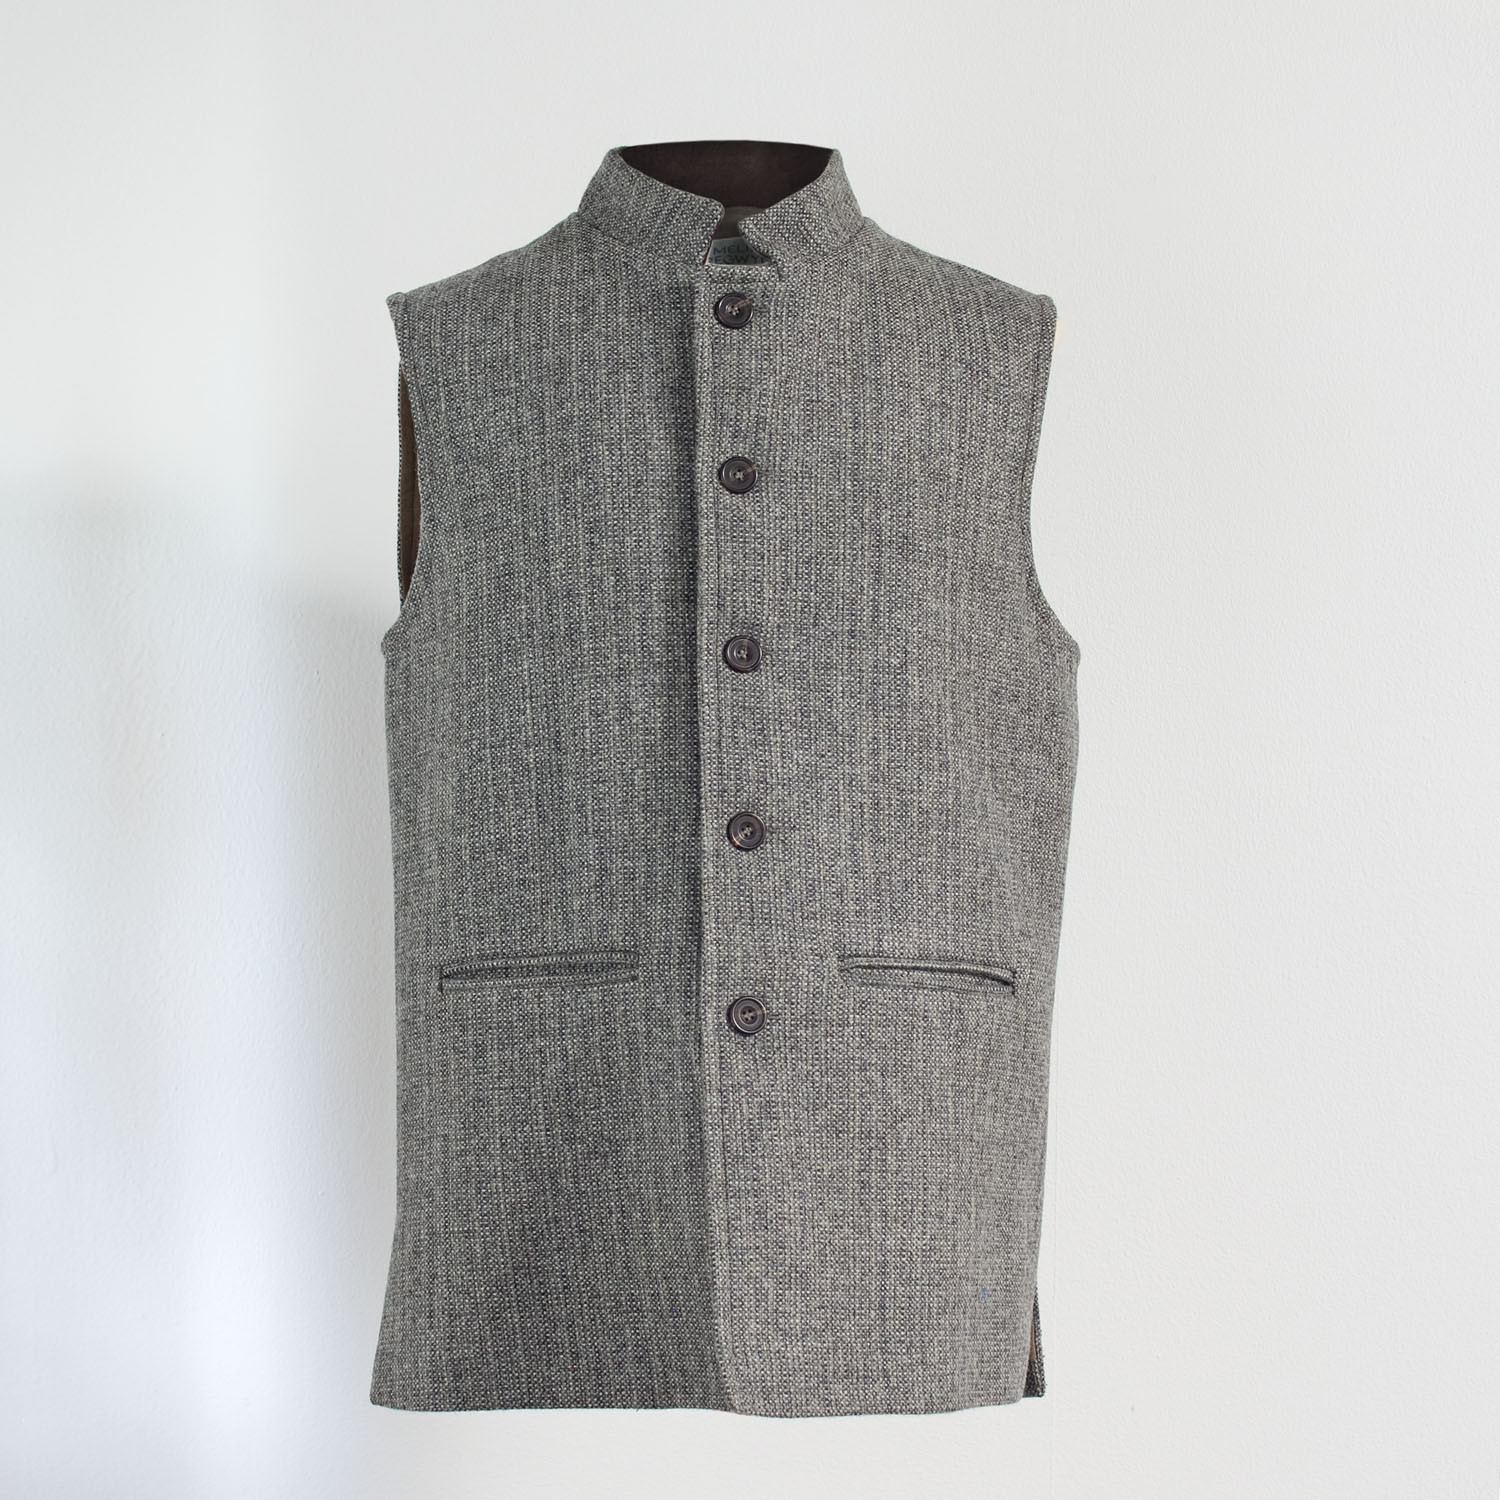 Semiplain stone Nehru sleeveless jacket